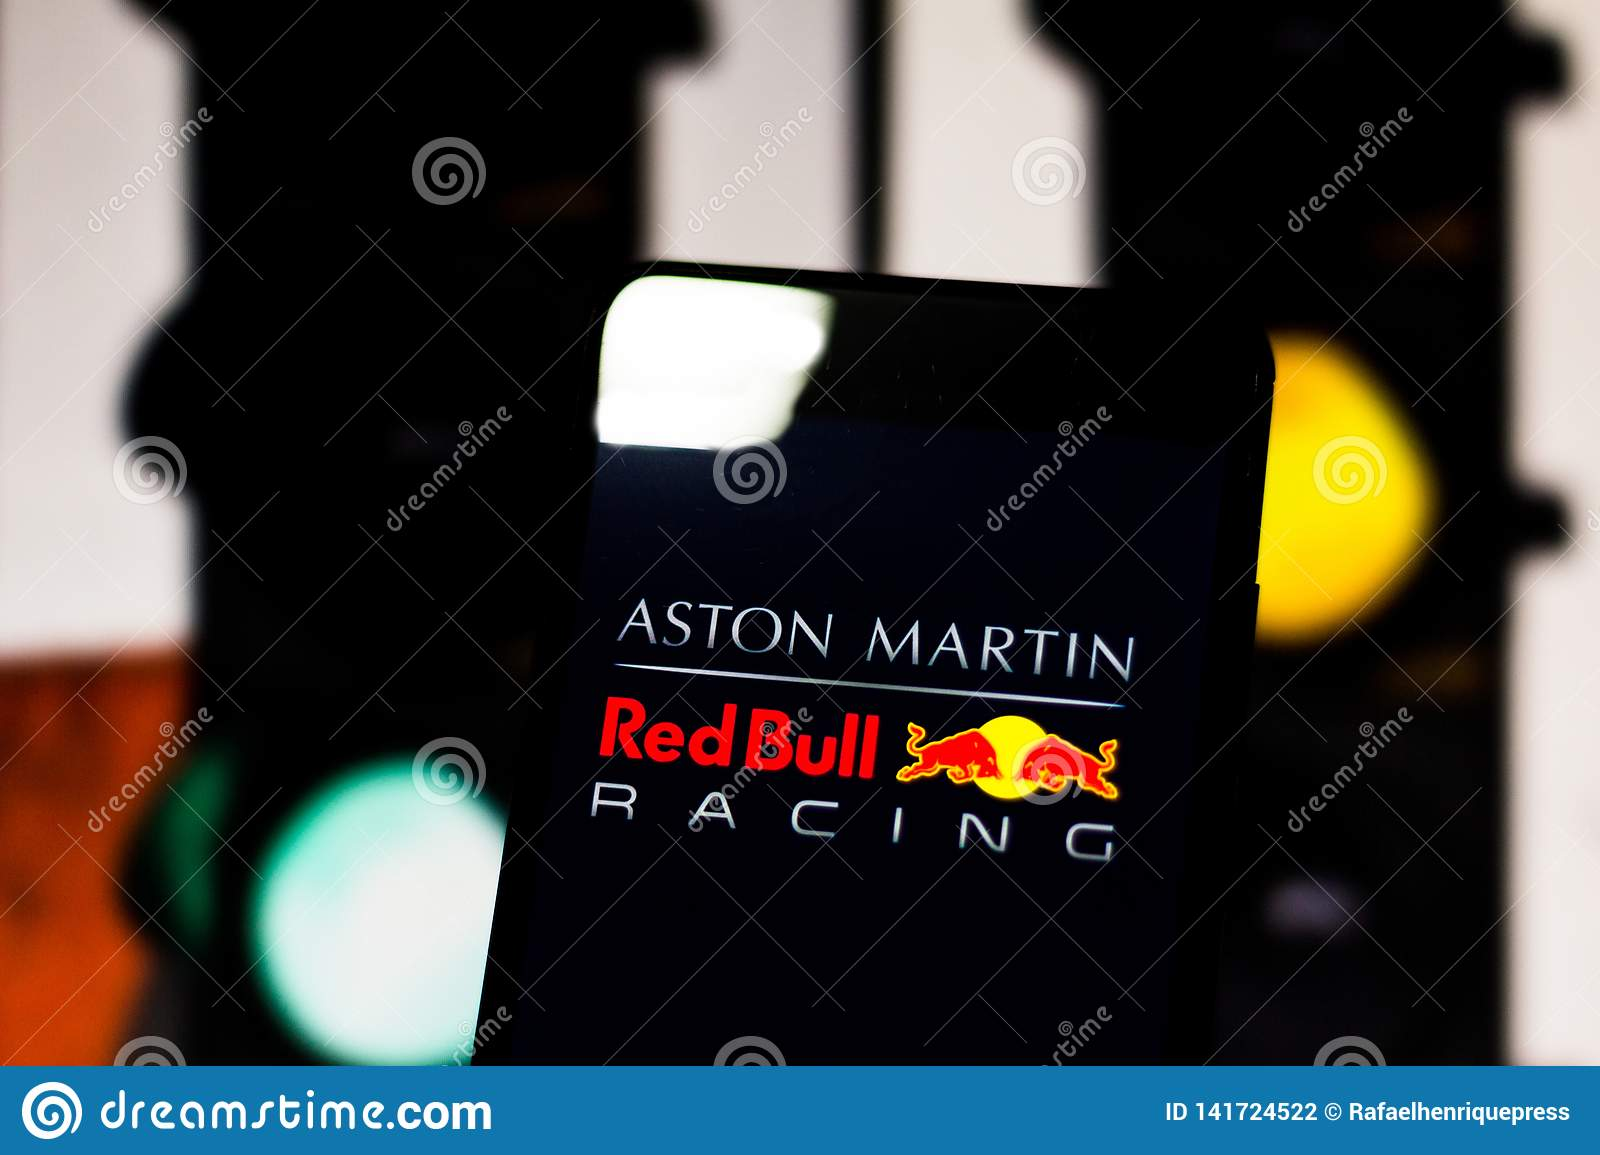 Team Logo Aston Martin Red Bull Racing Formula 1 On The Screen Of The Mobile Device Editorial Photography Image Of March Championship 141724522